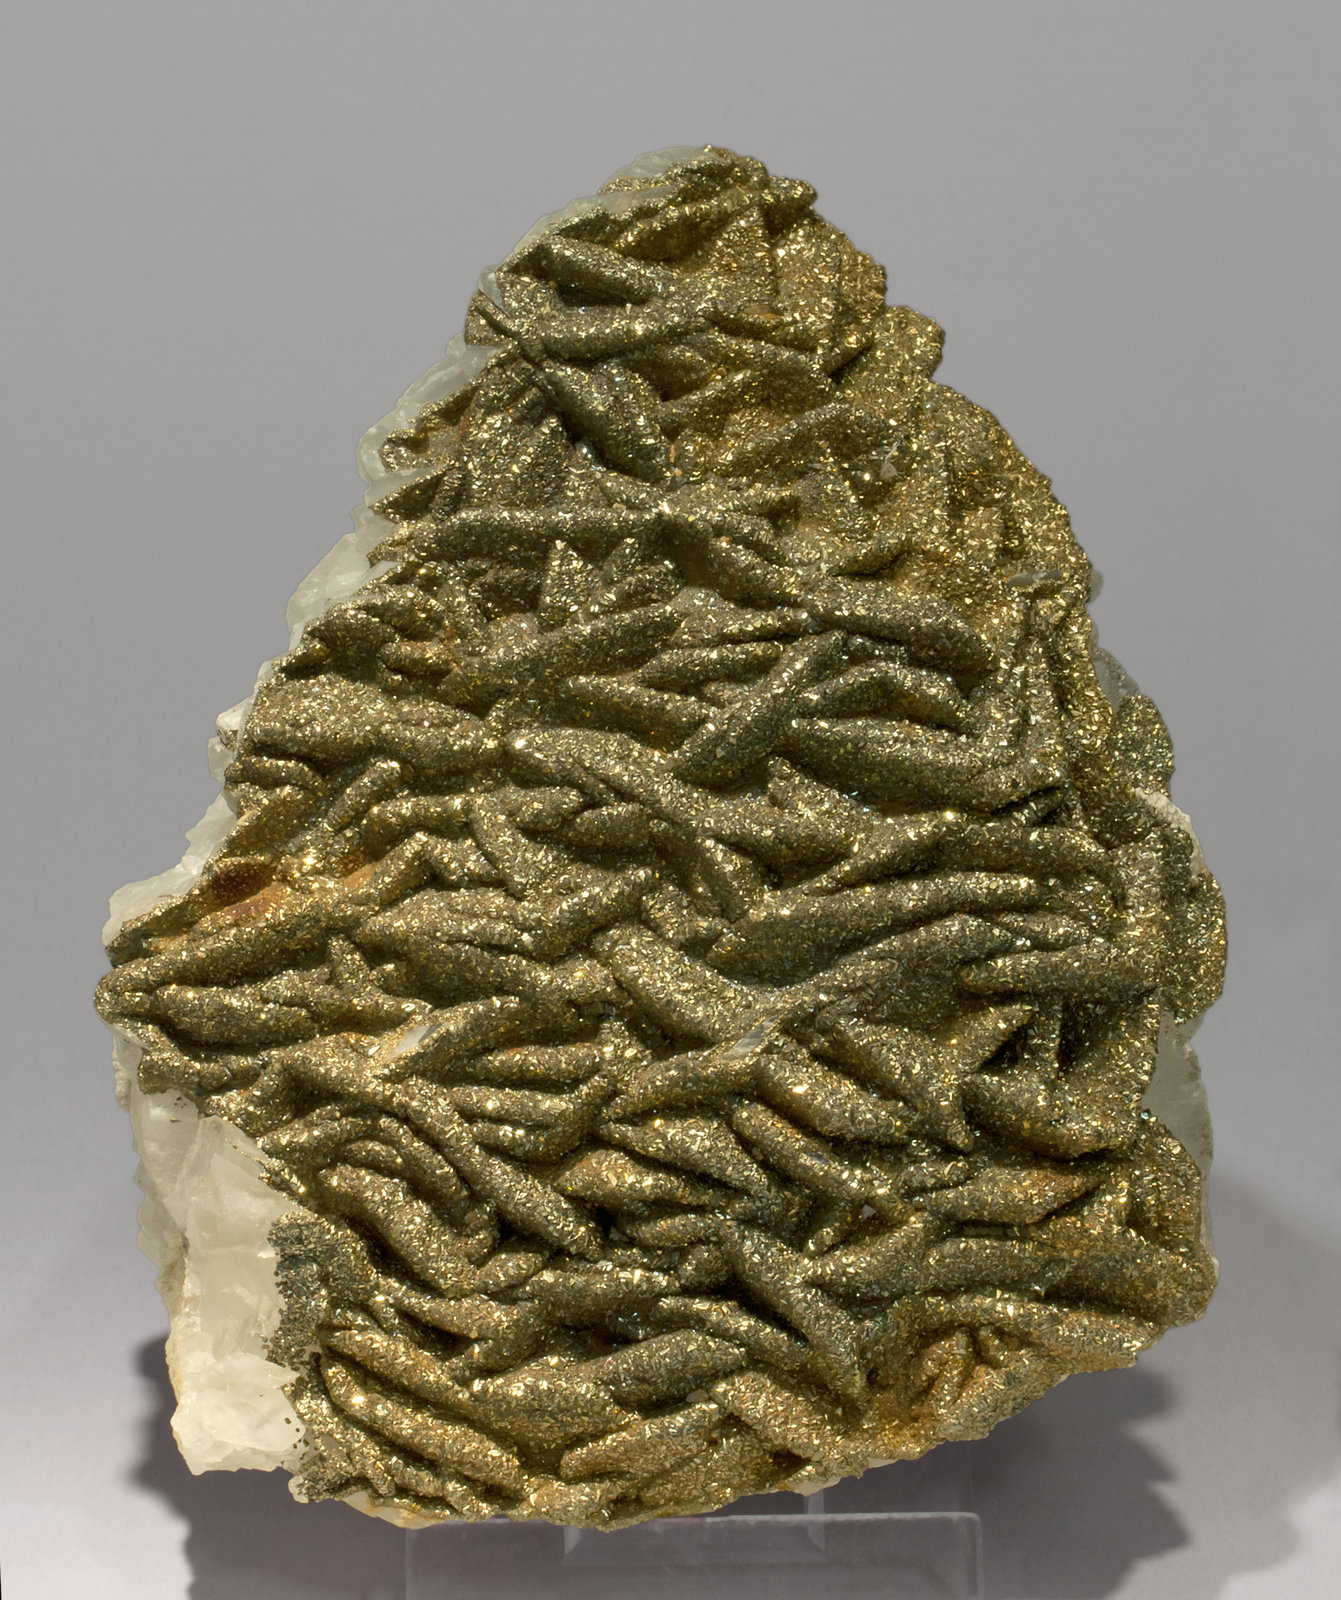 specimens/s_imagesX3/Pyrite-MD13X3f.jpg